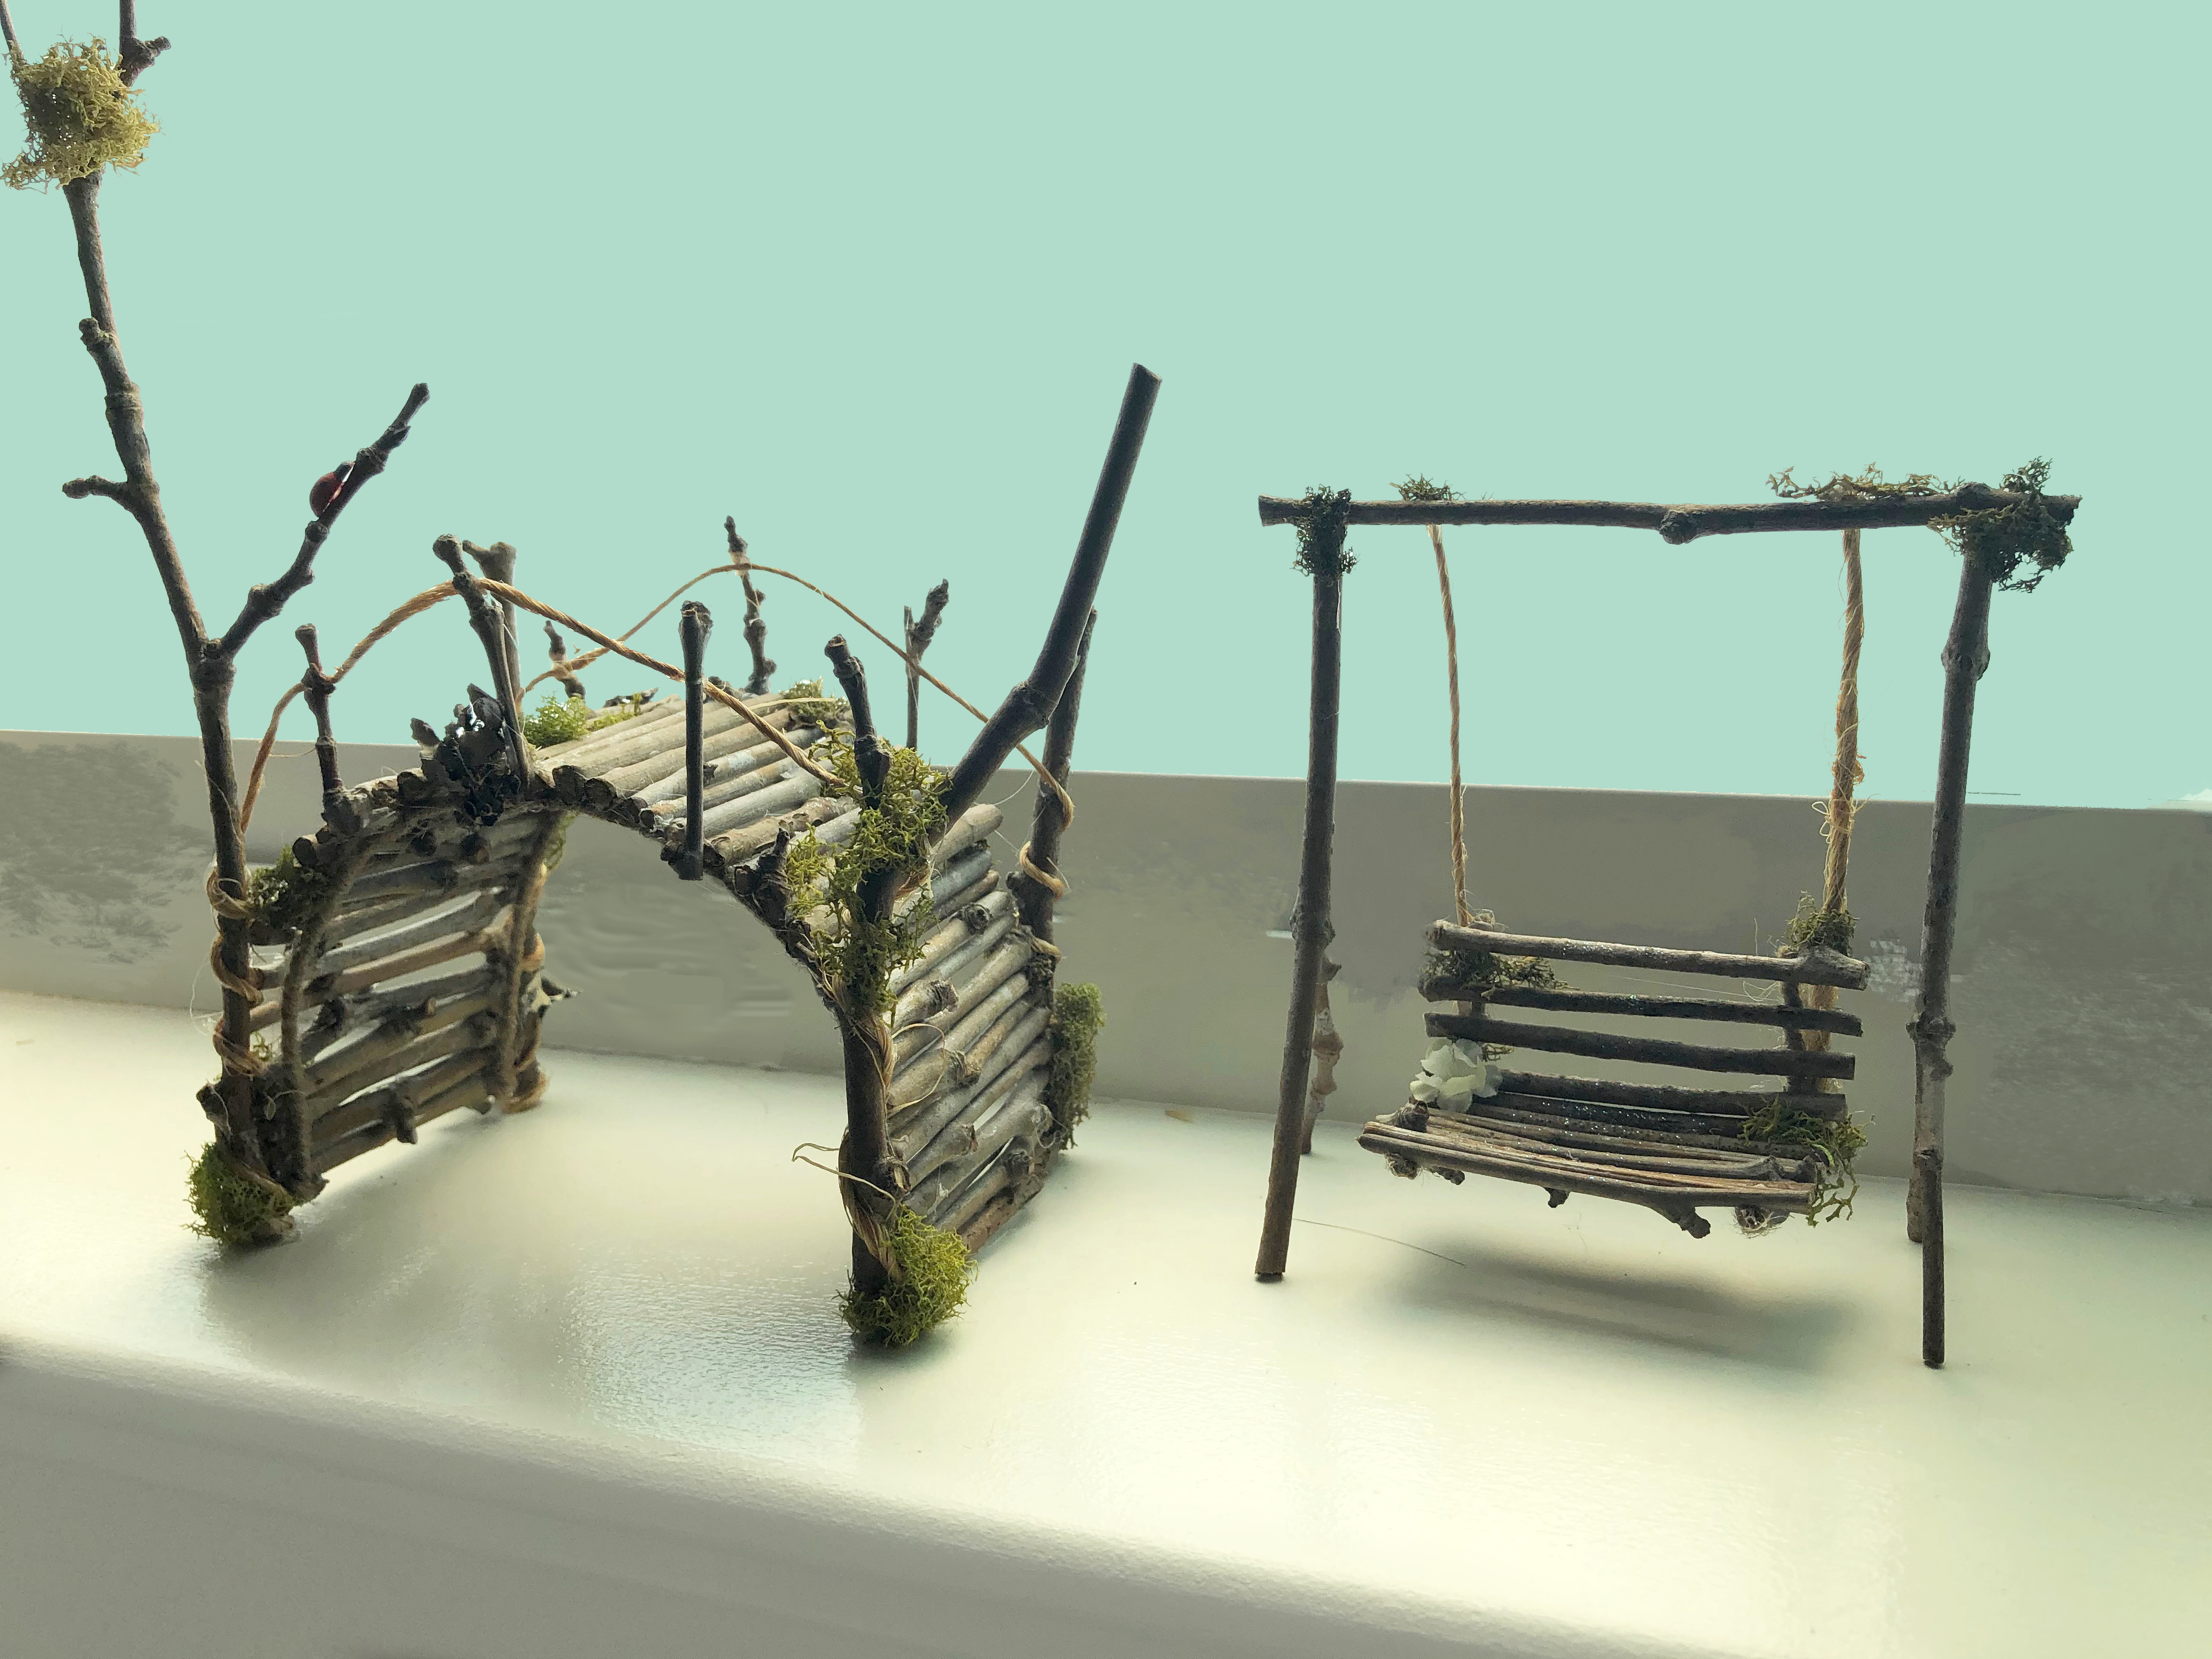 Fairy Garden Bridge and Swing